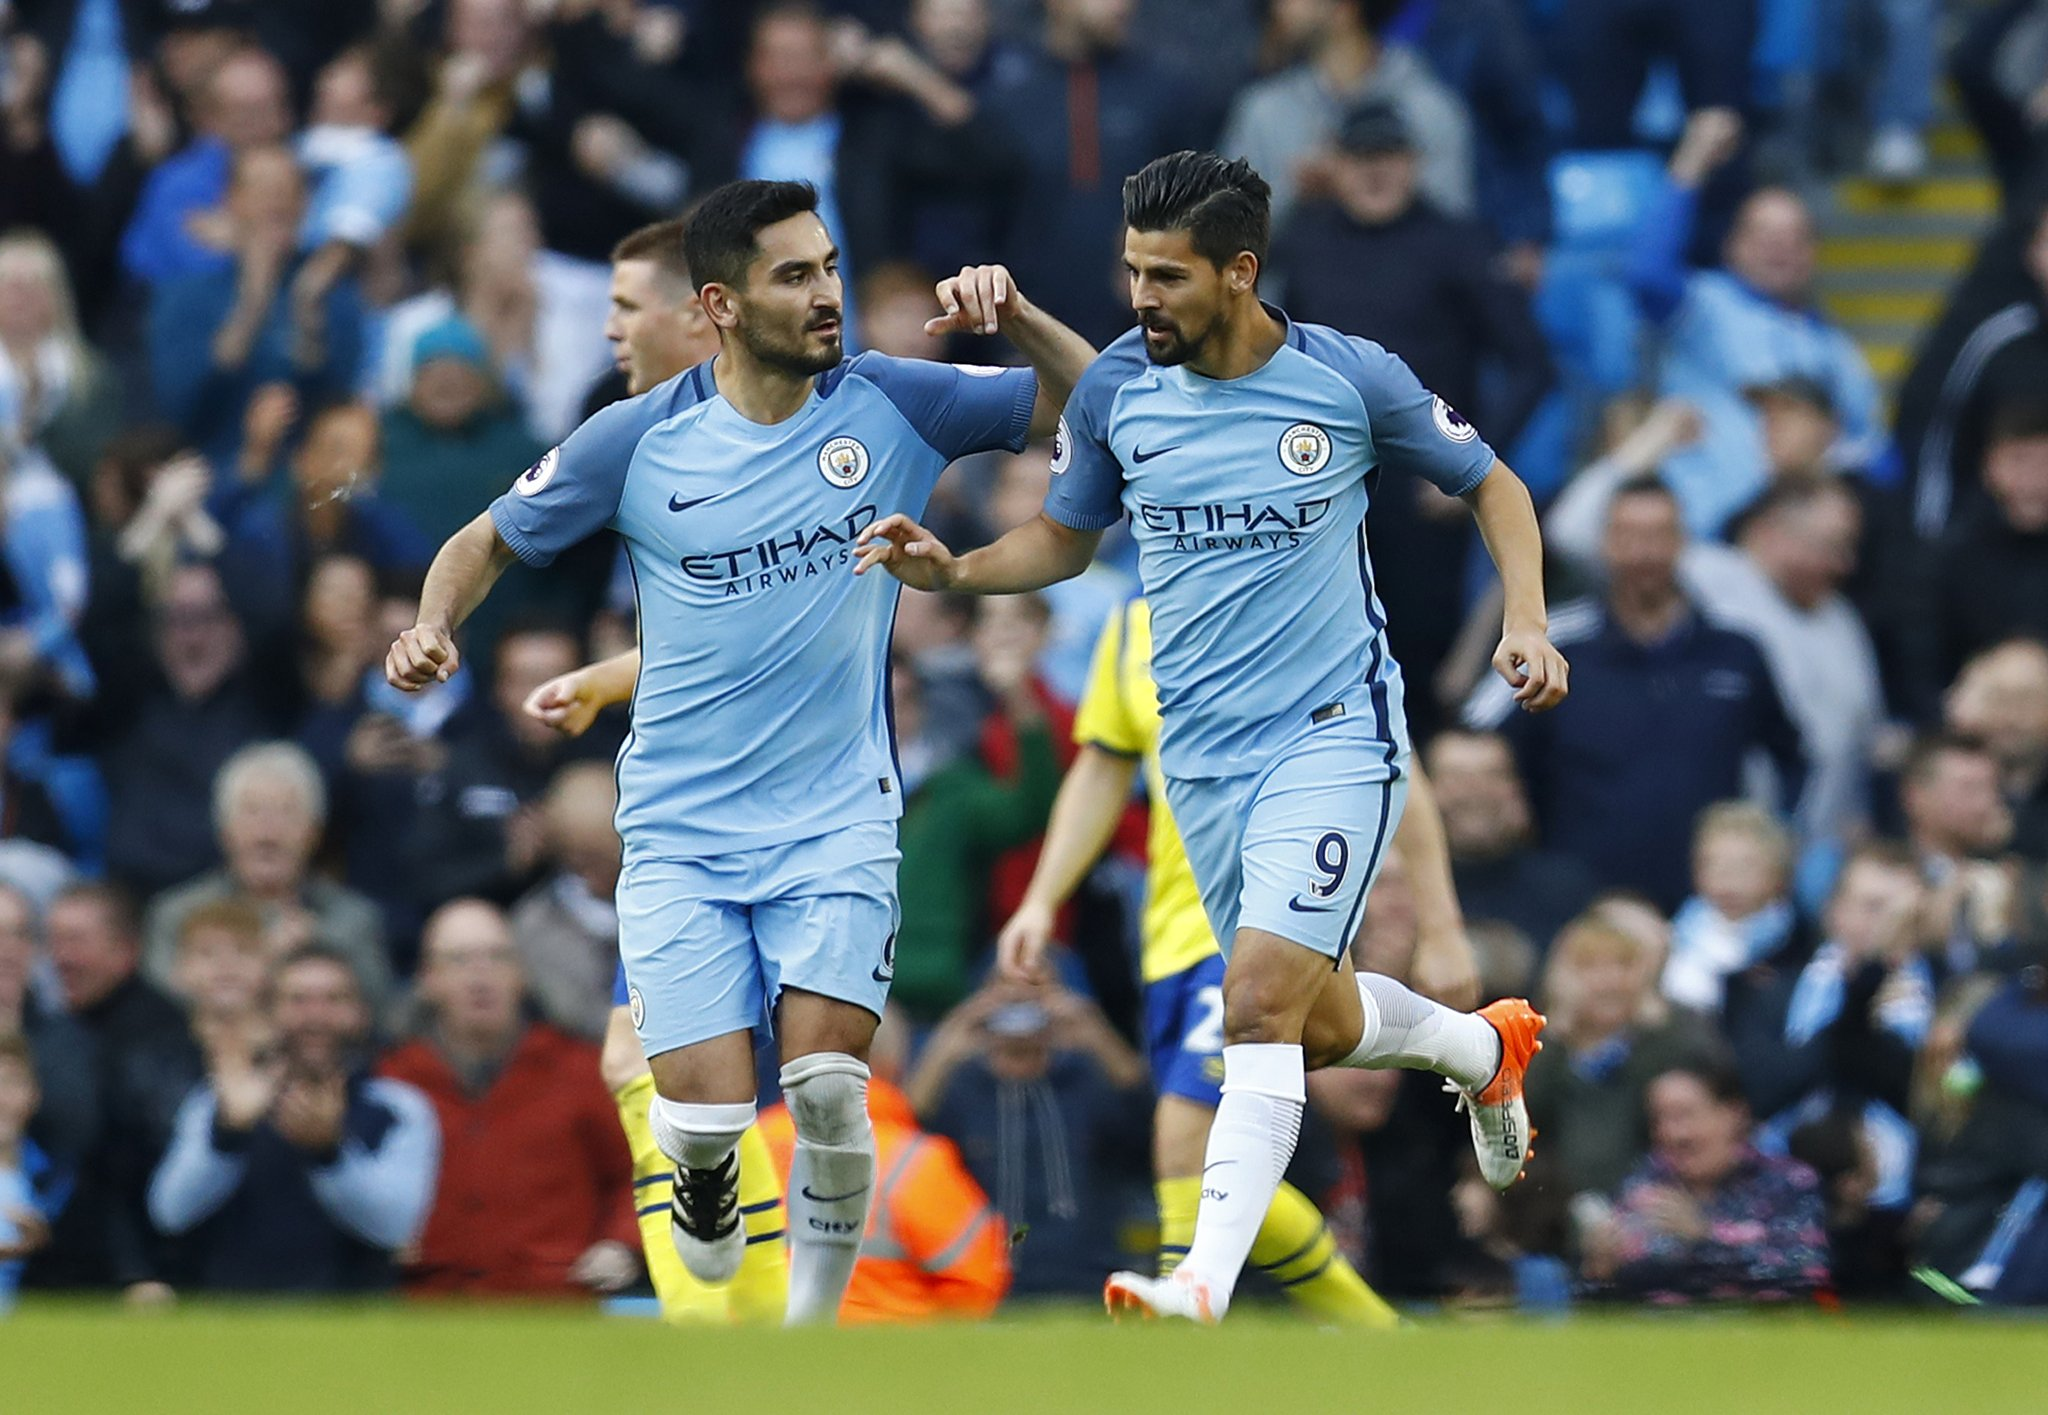 Iheanacho Fires Blank As Everton Stop Man City